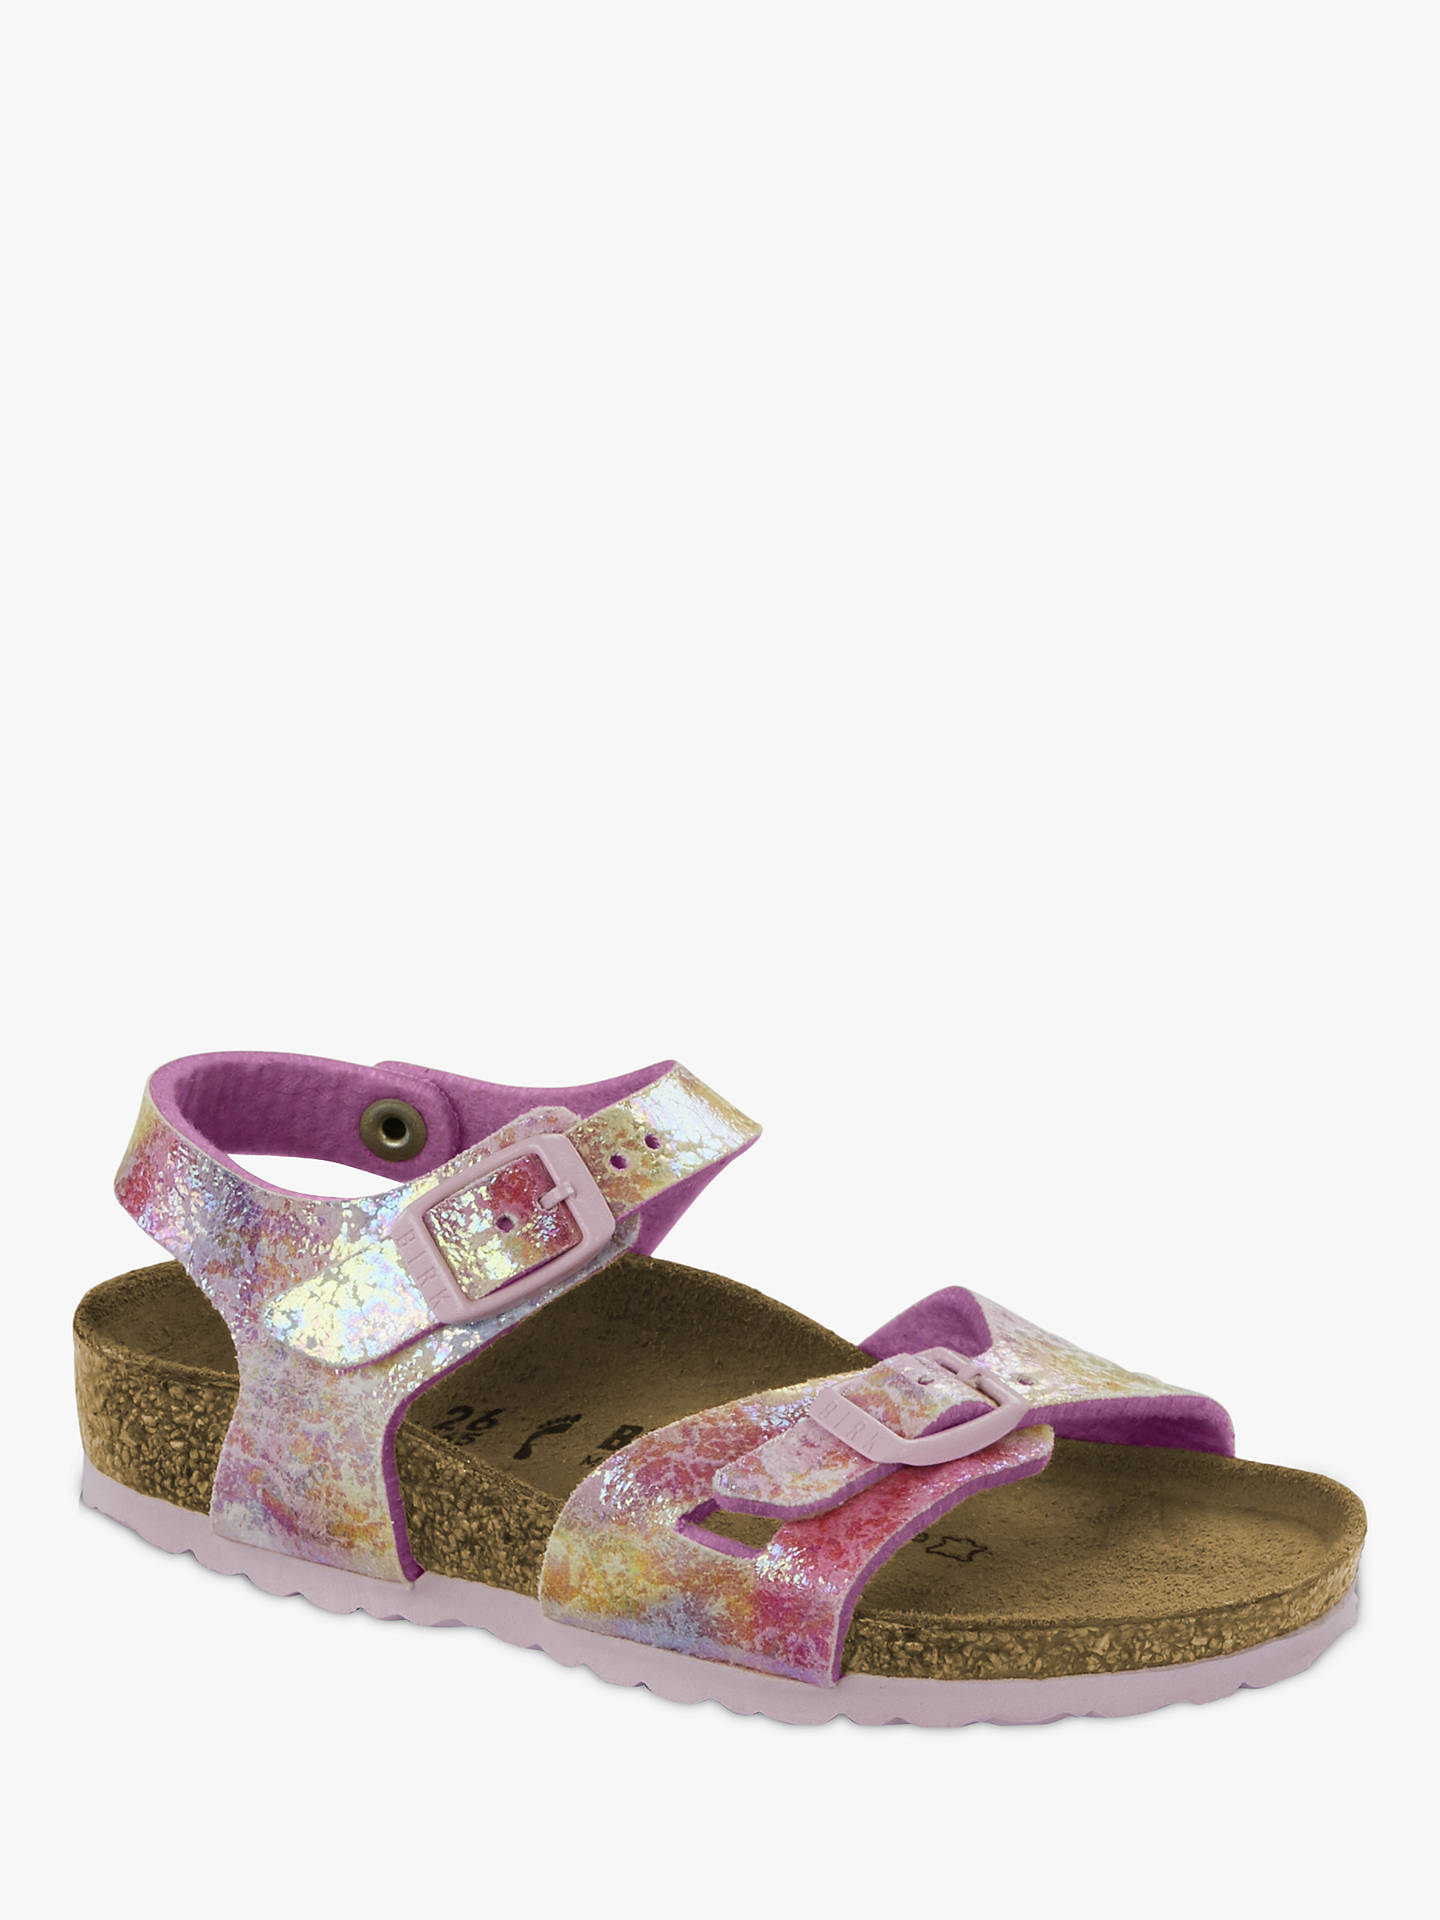 Birkenstock Children's Rio Watercolour Buckle Sandals, Multi